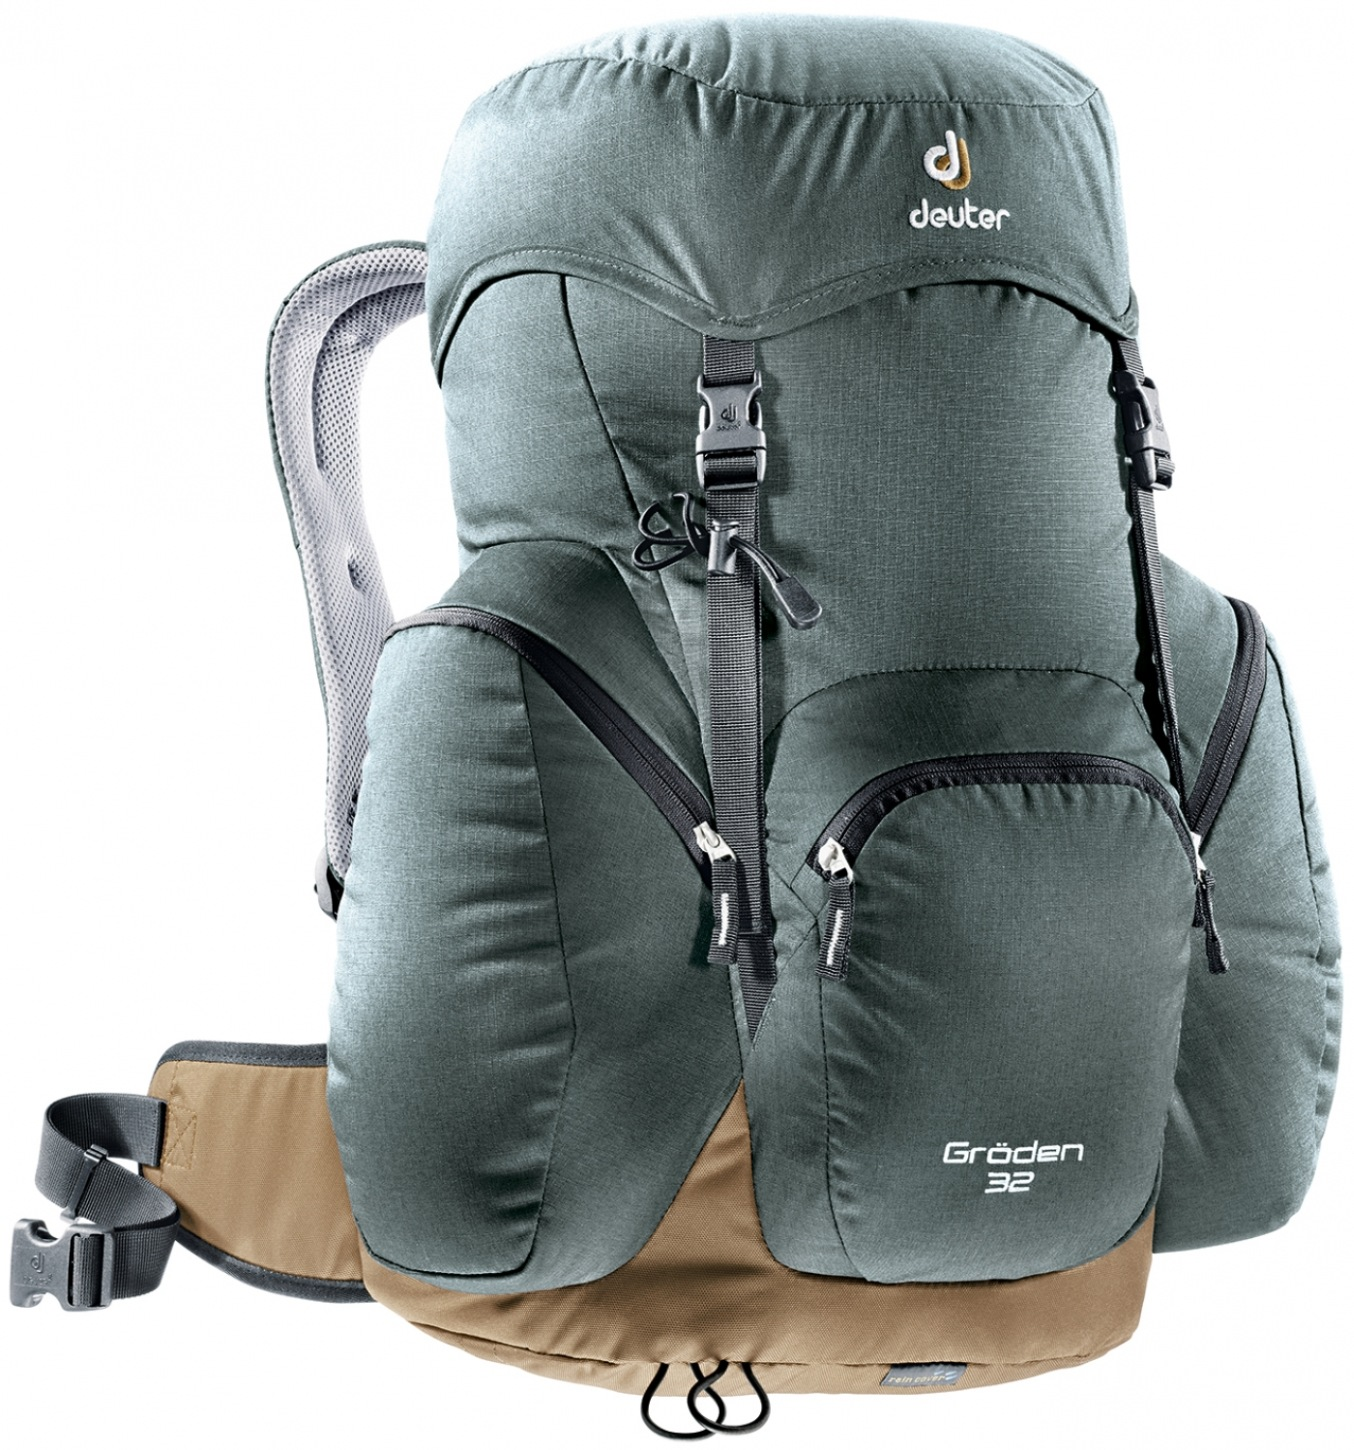 Deuter Gröden 32 anthracite-lion-30